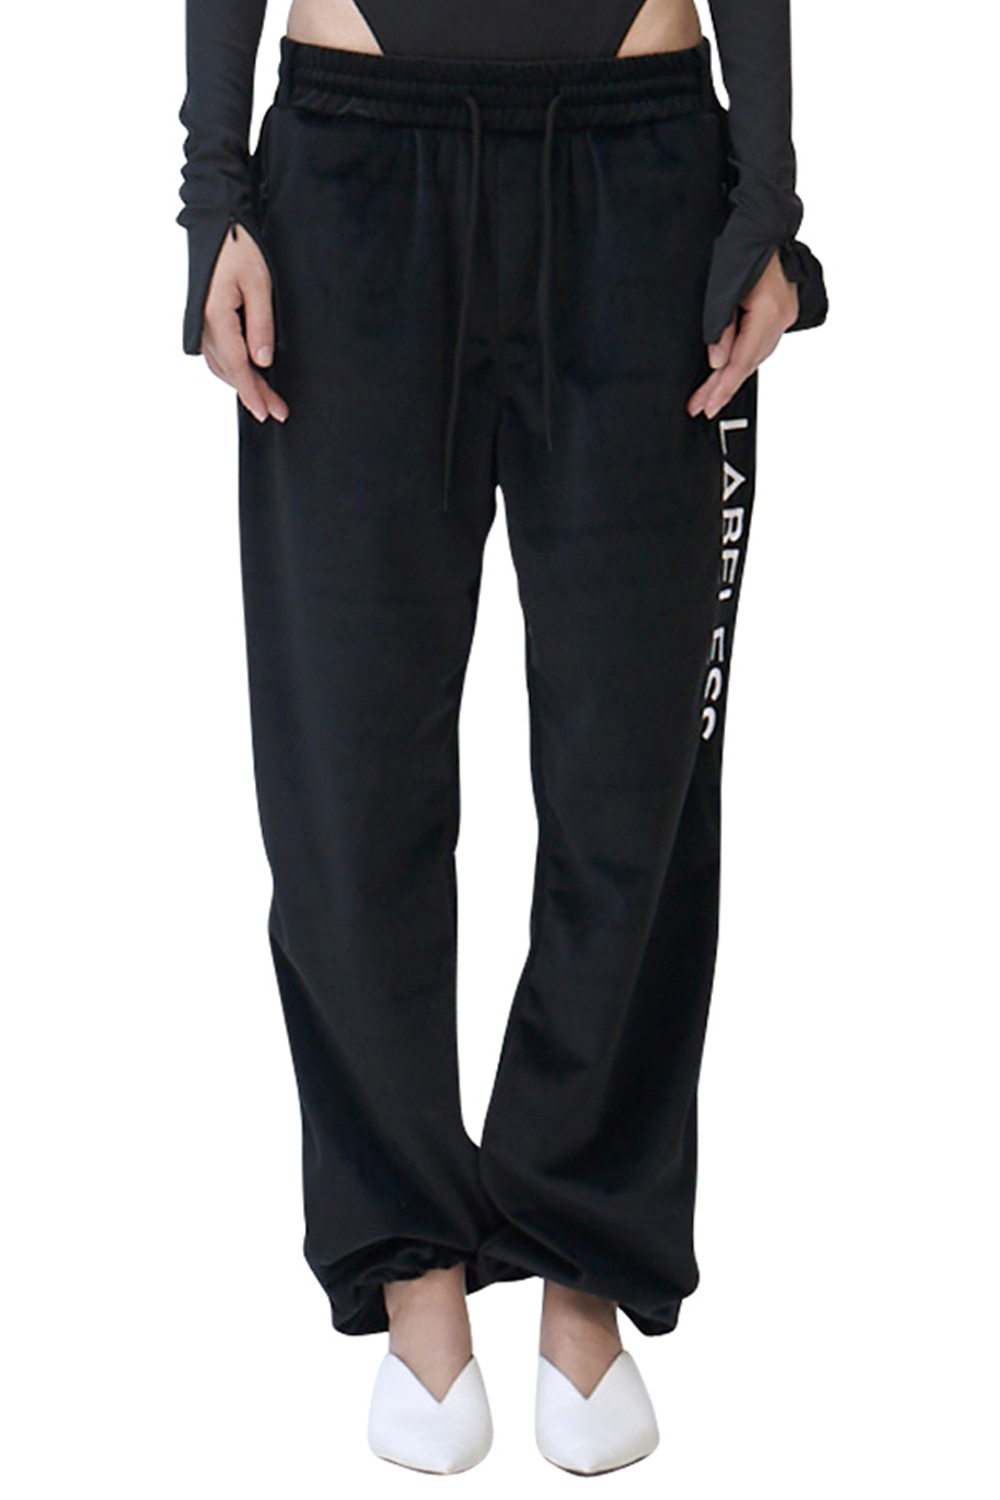 BLACK SIDE LOGO SILKY LOUNGE TROUSERS